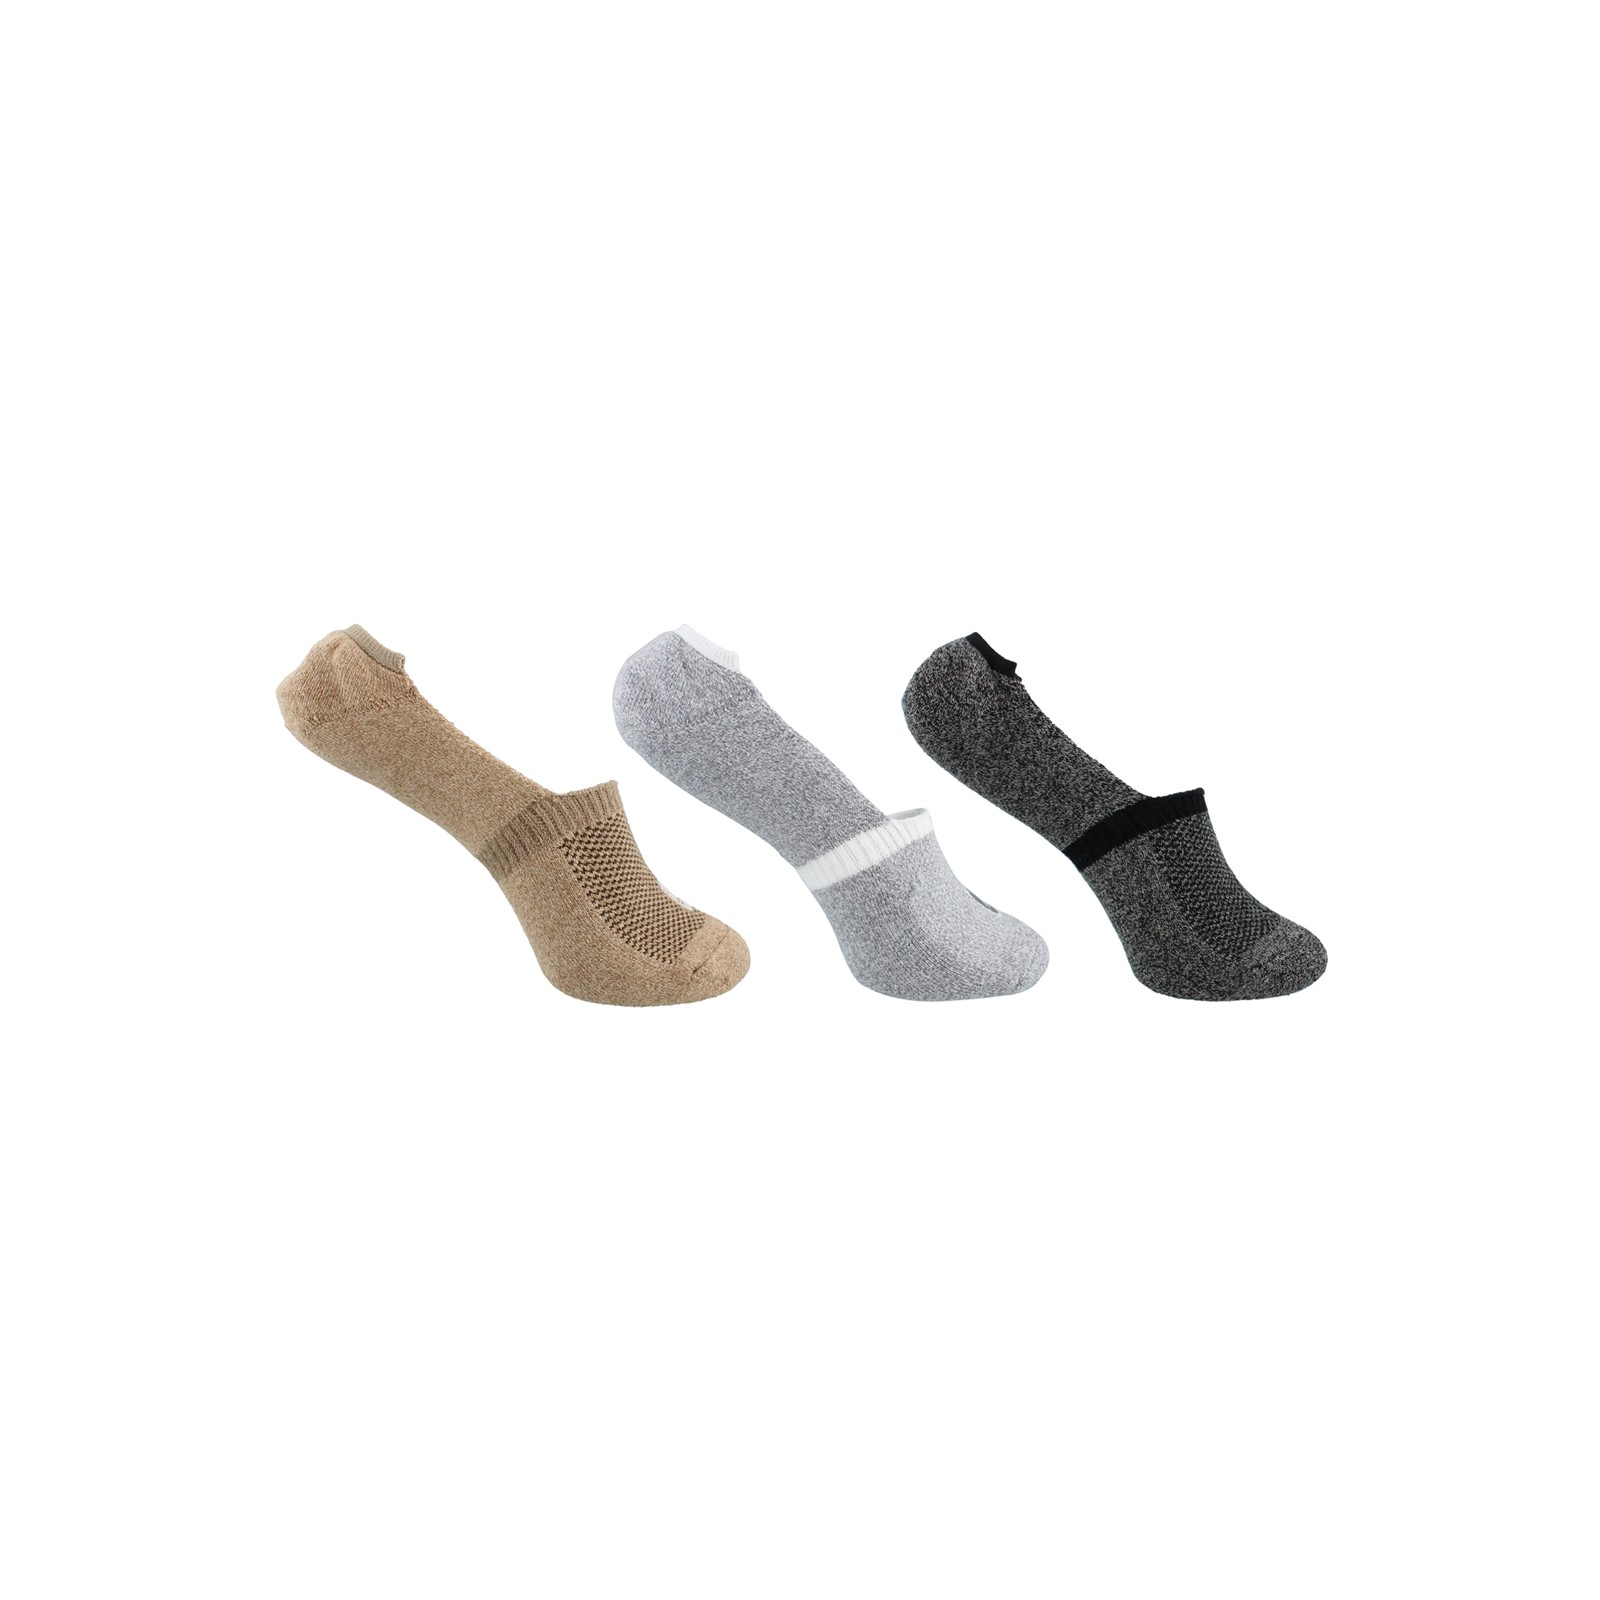 Men's Sperry, Cushioned Performance Liner Sock - 3 Pack